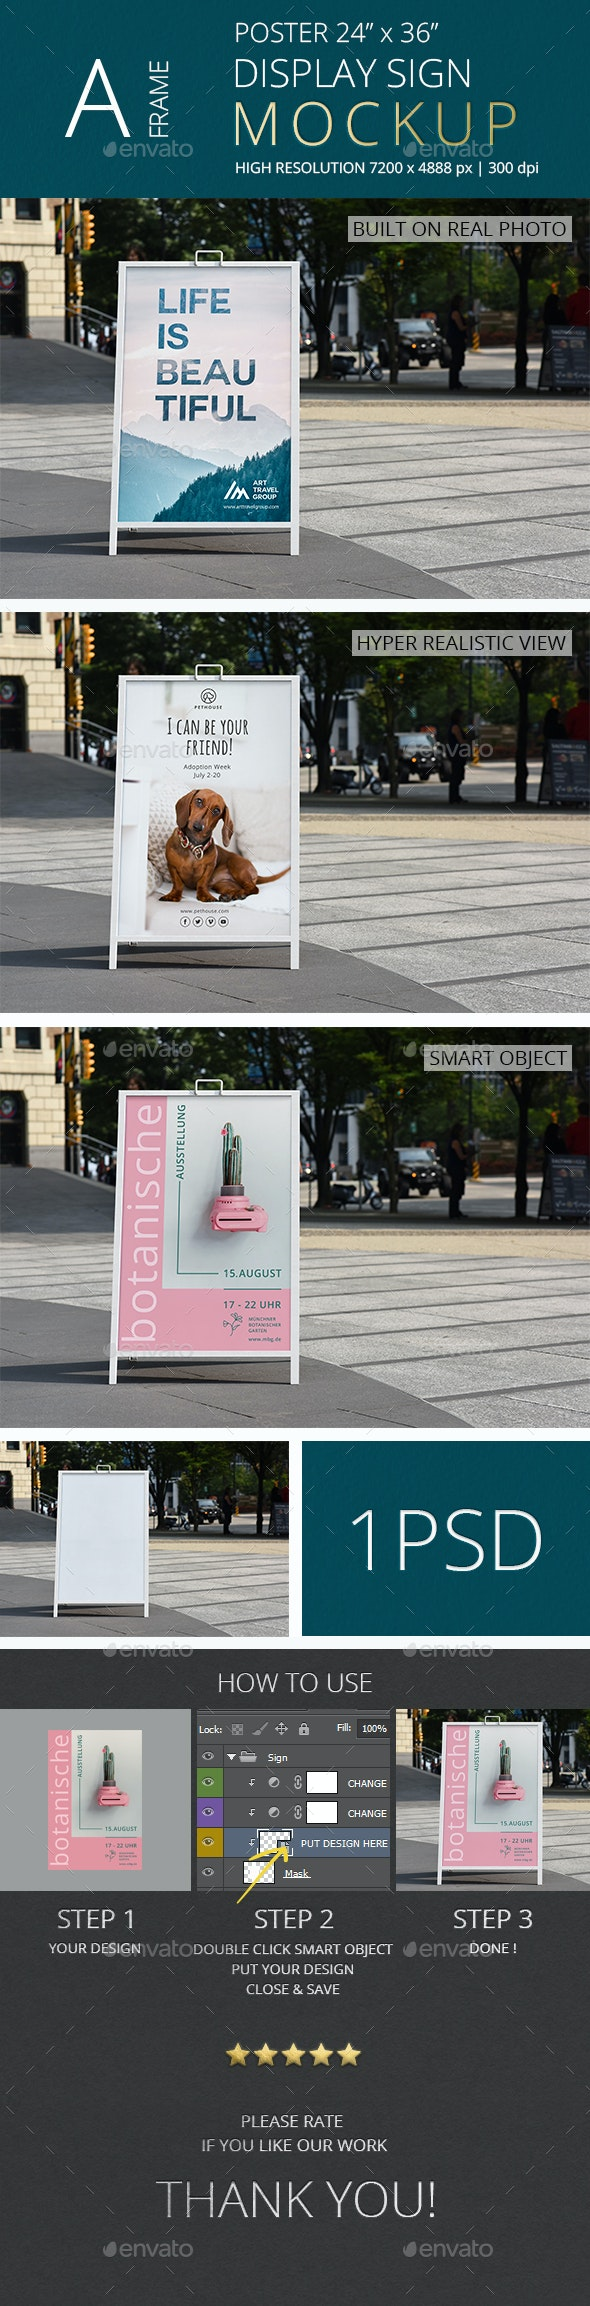 A-Frame Poster Display Sign Mockup/ Vol 4.0